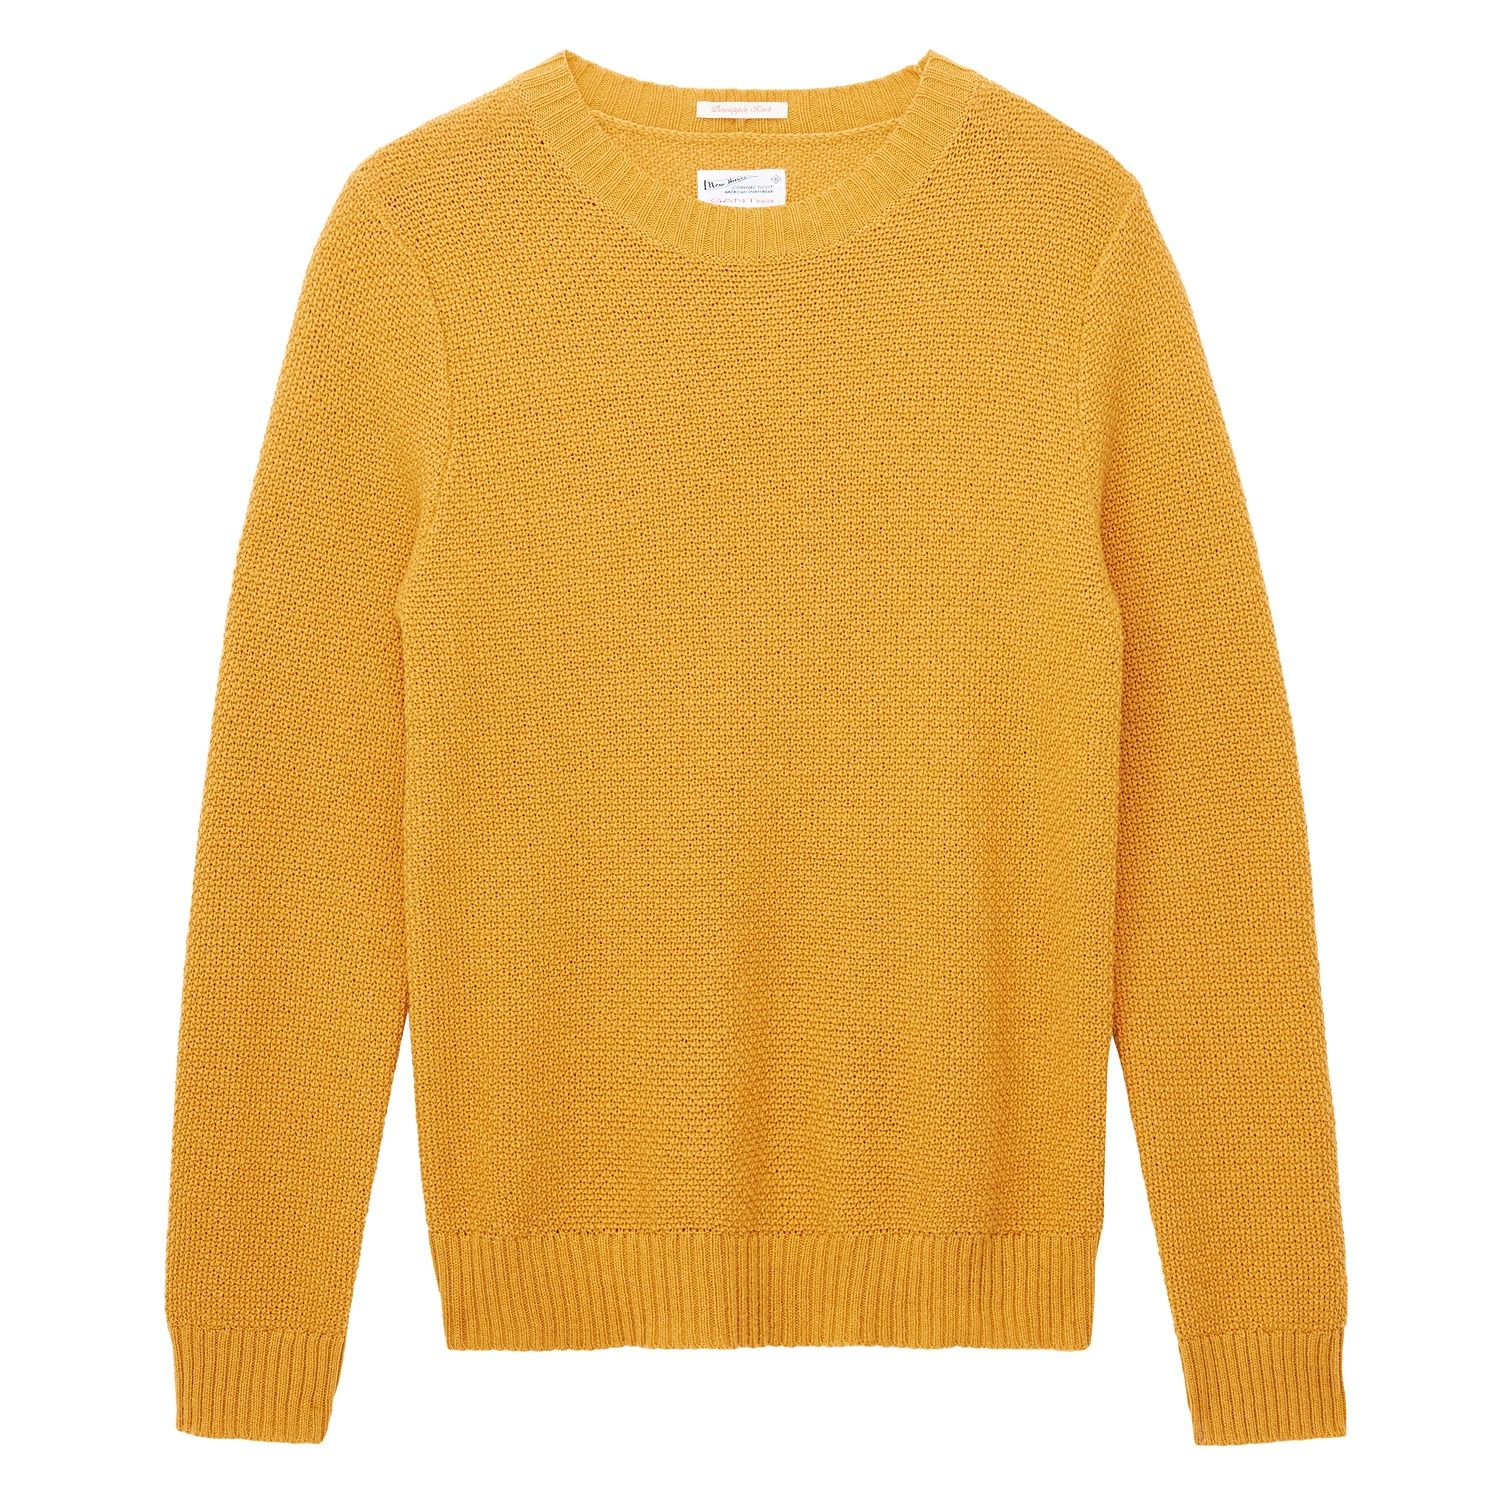 Gant Rugger PINEAPPLE KNIT SWEATER | Clothes